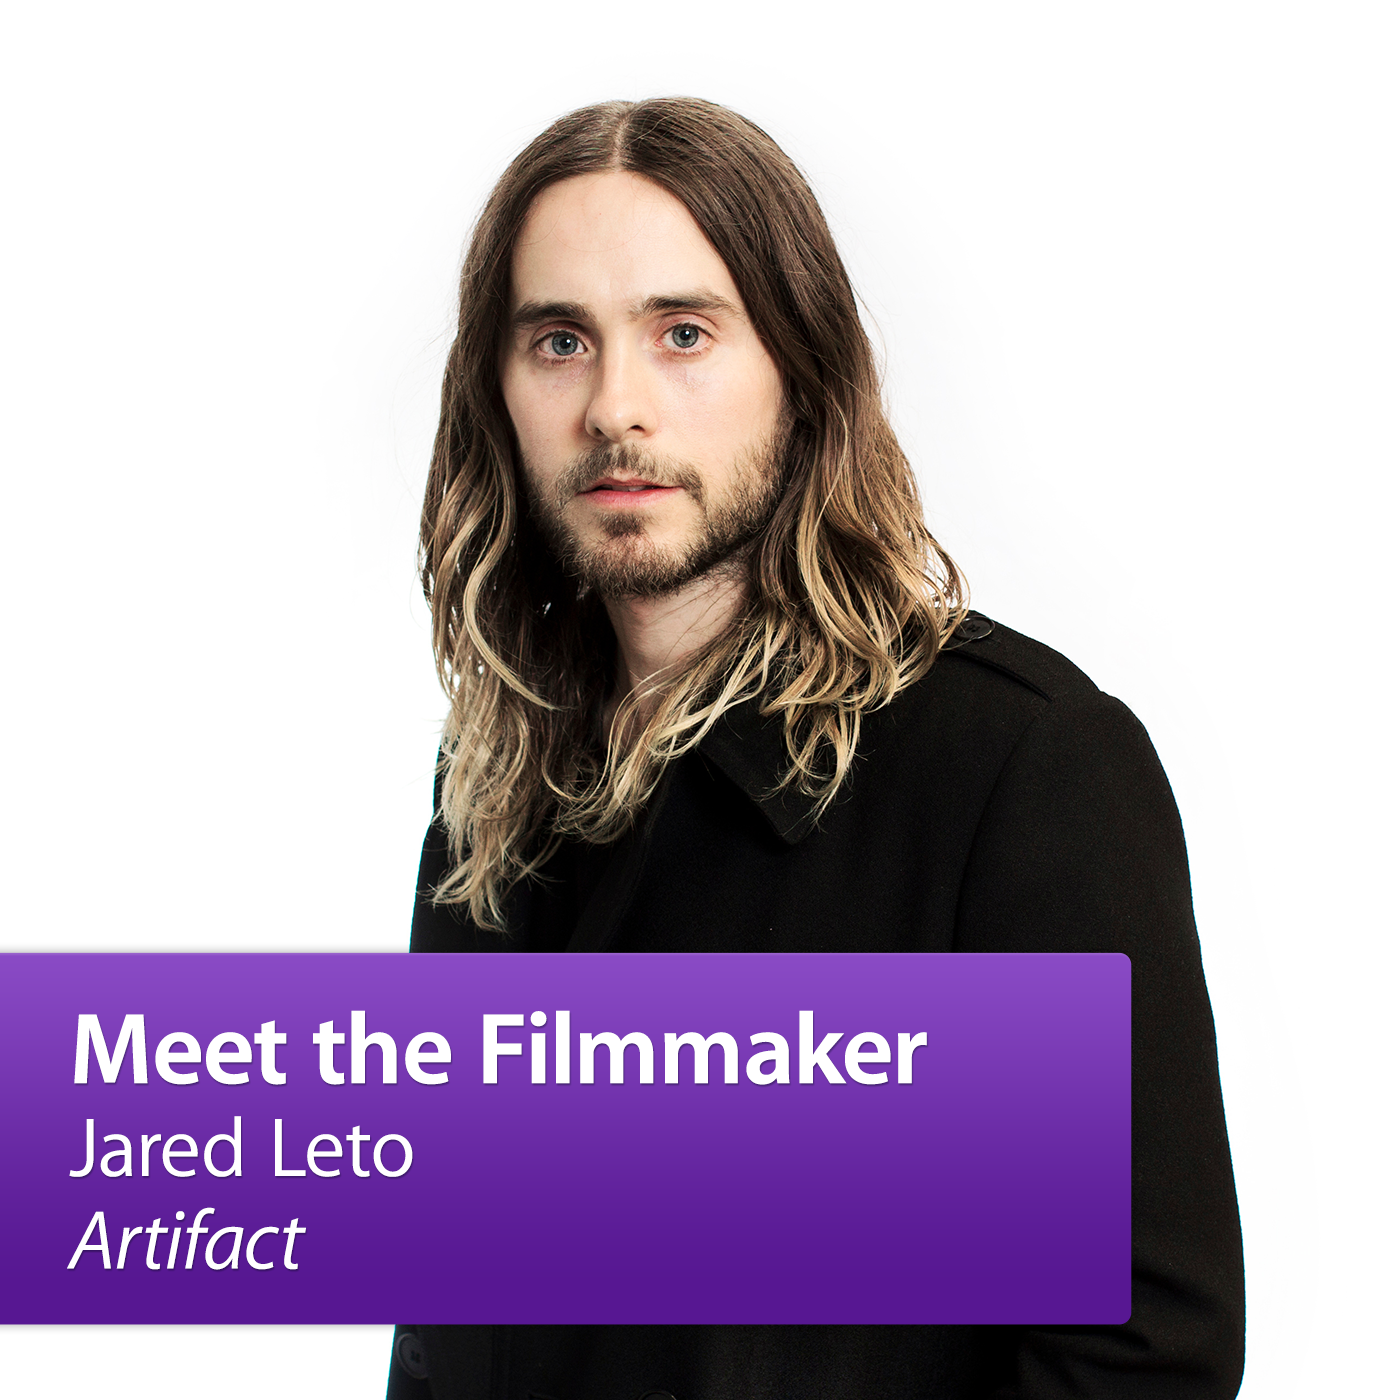 Jared Leto: Meet the Filmmaker